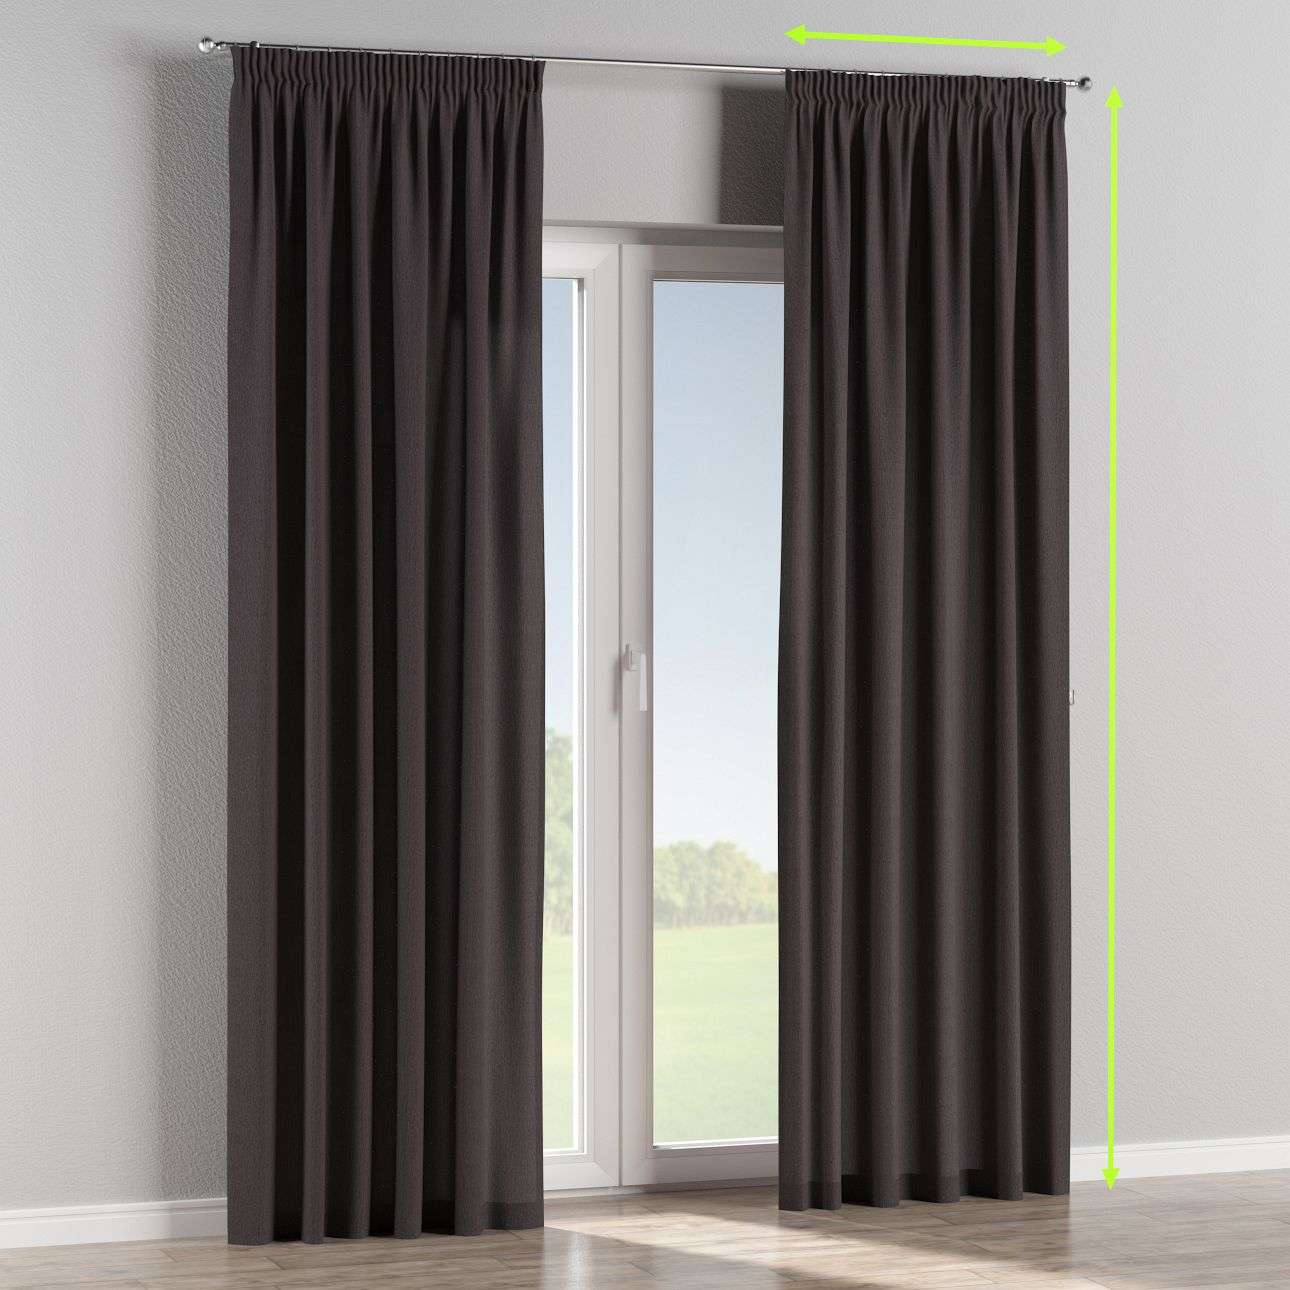 Pencil pleat lined curtains in collection Chenille, fabric: 702-20